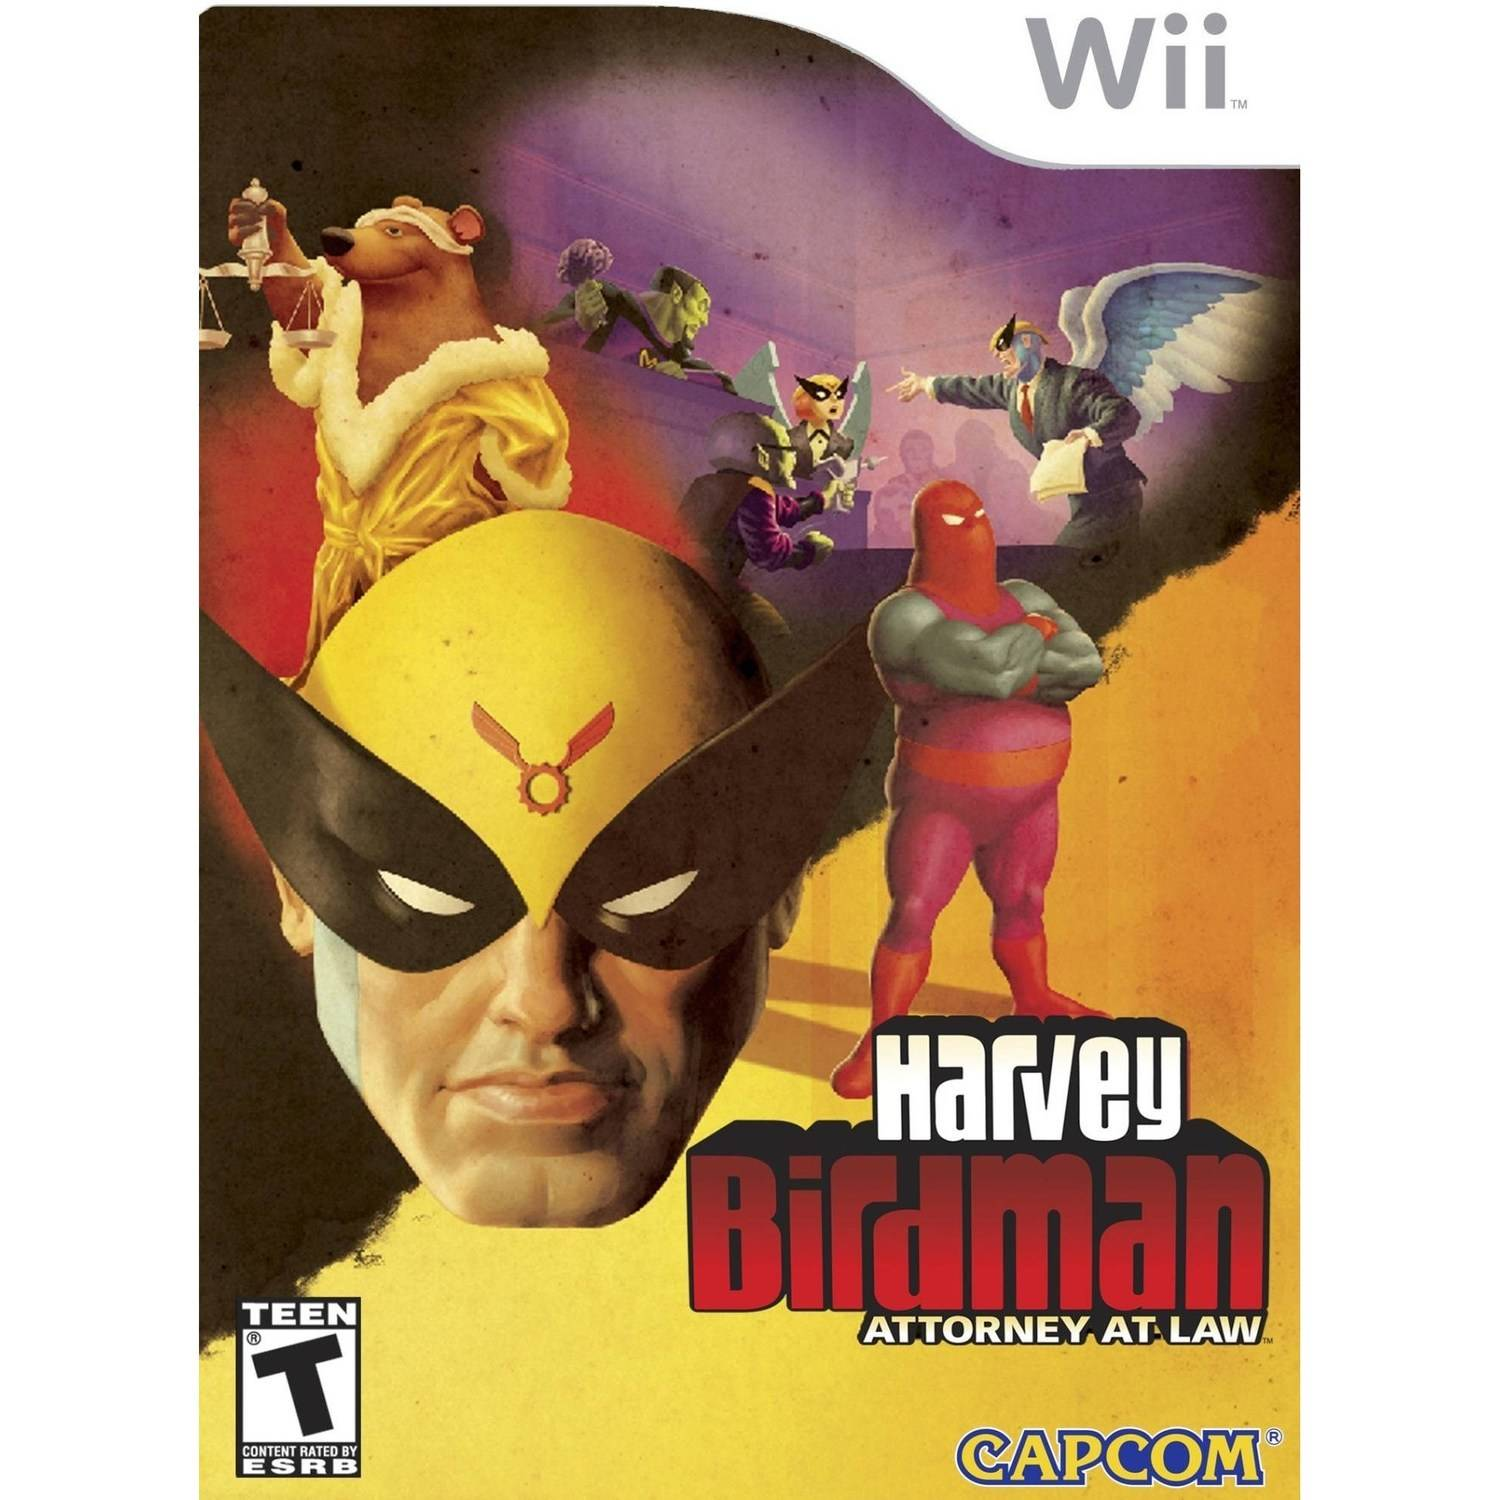 Harvey Birdman Attorney at Law - Pre-Owned (Wii)